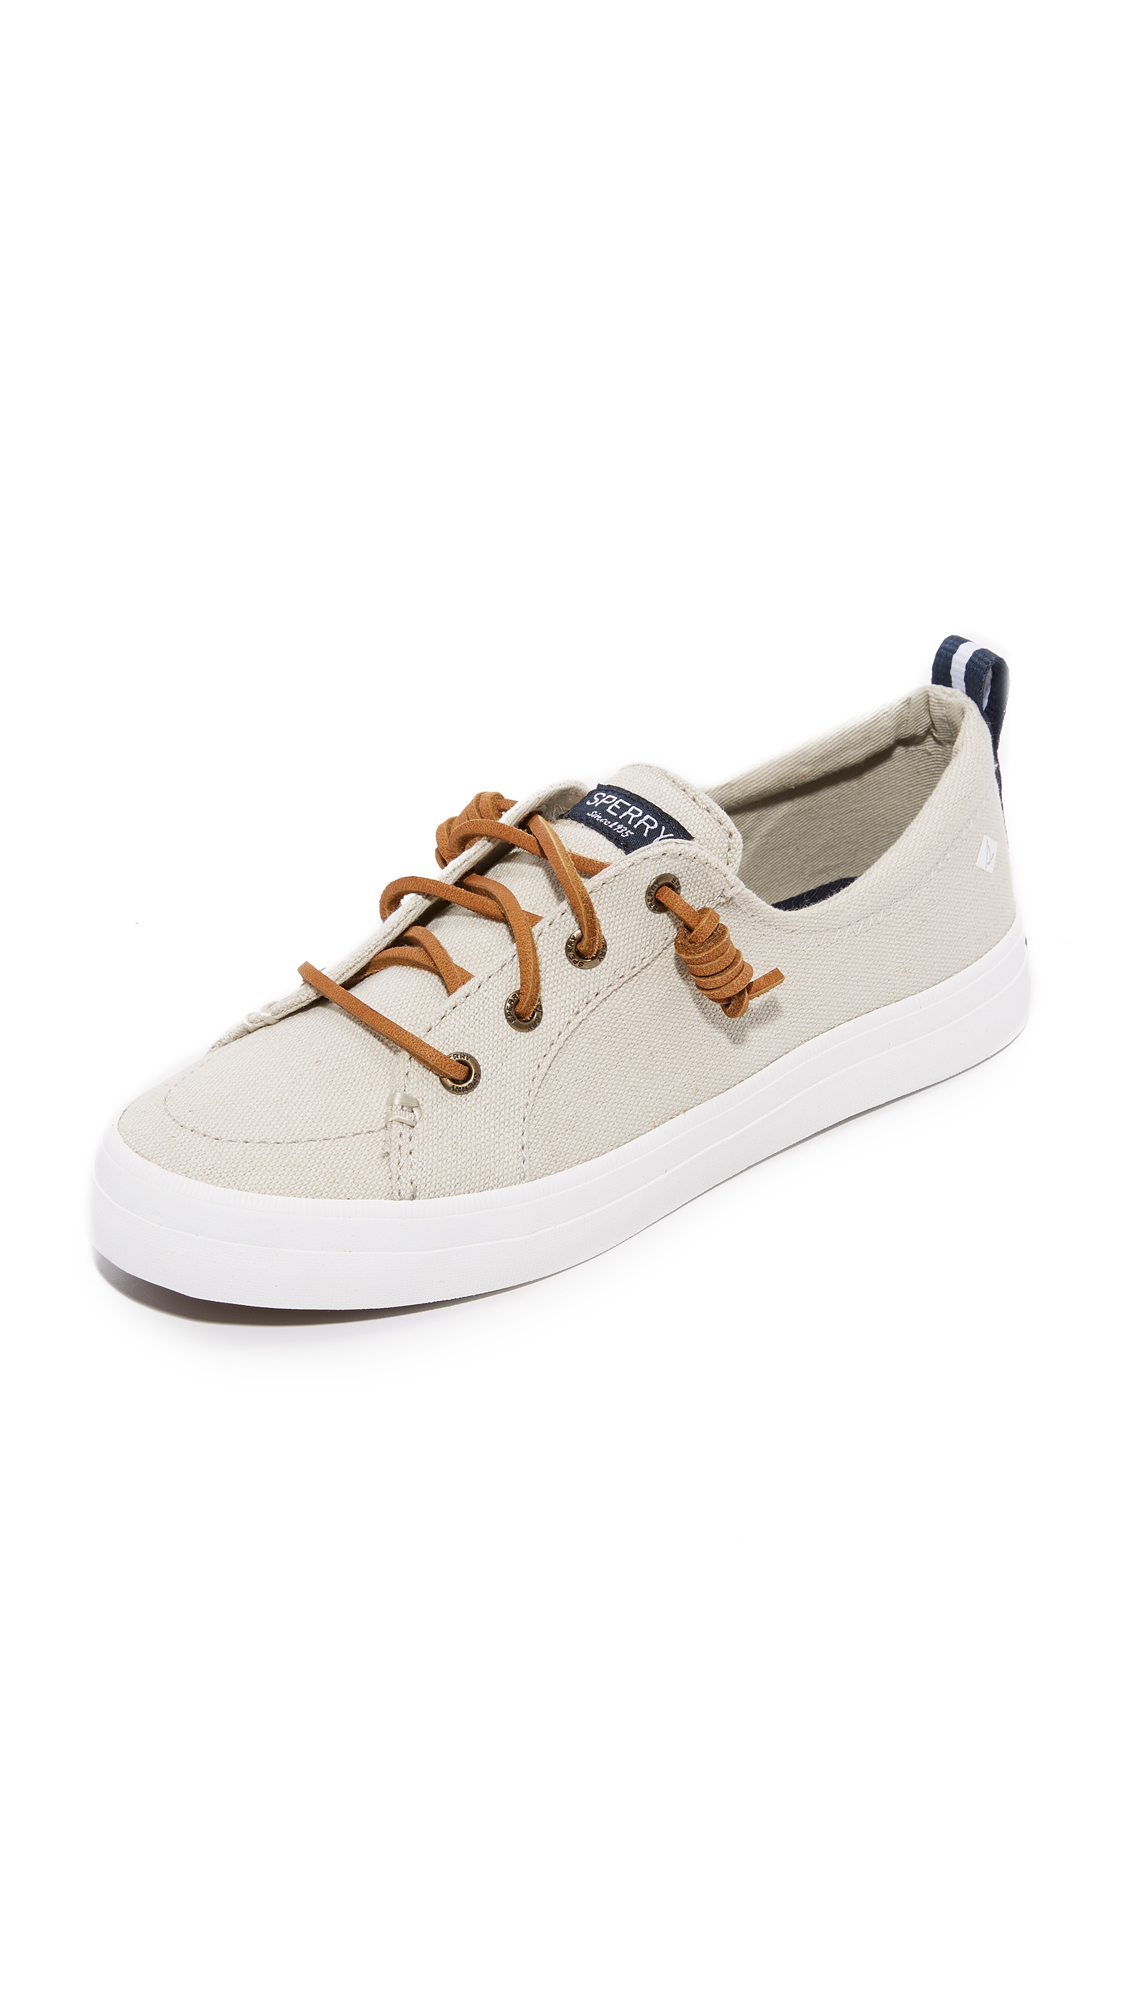 Photo of Sperry Crest Vibe Sneakers Oat - Sperry online